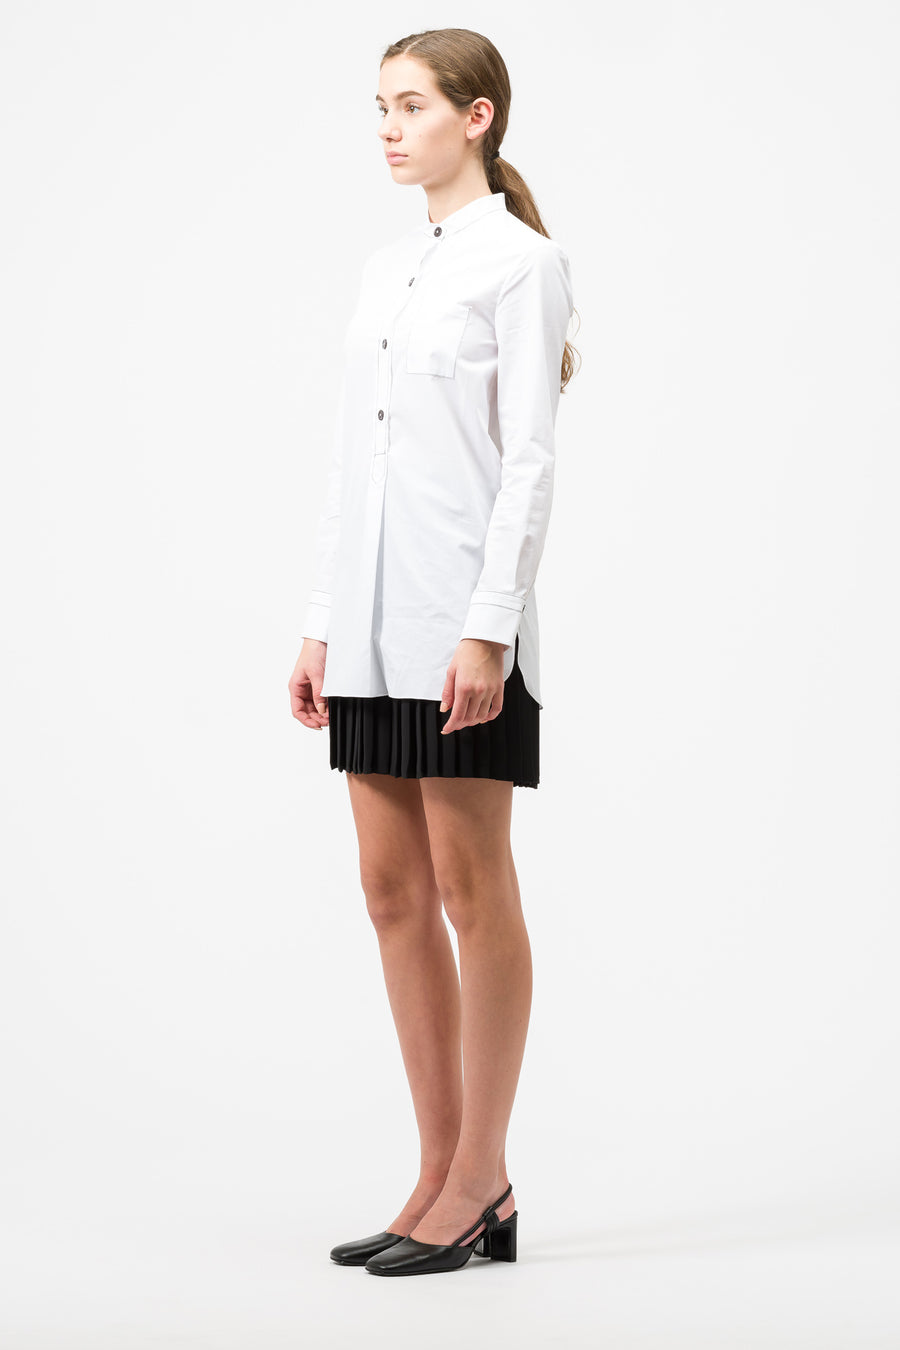 Marni Long Sleeve Blouse in Lily White - Notre